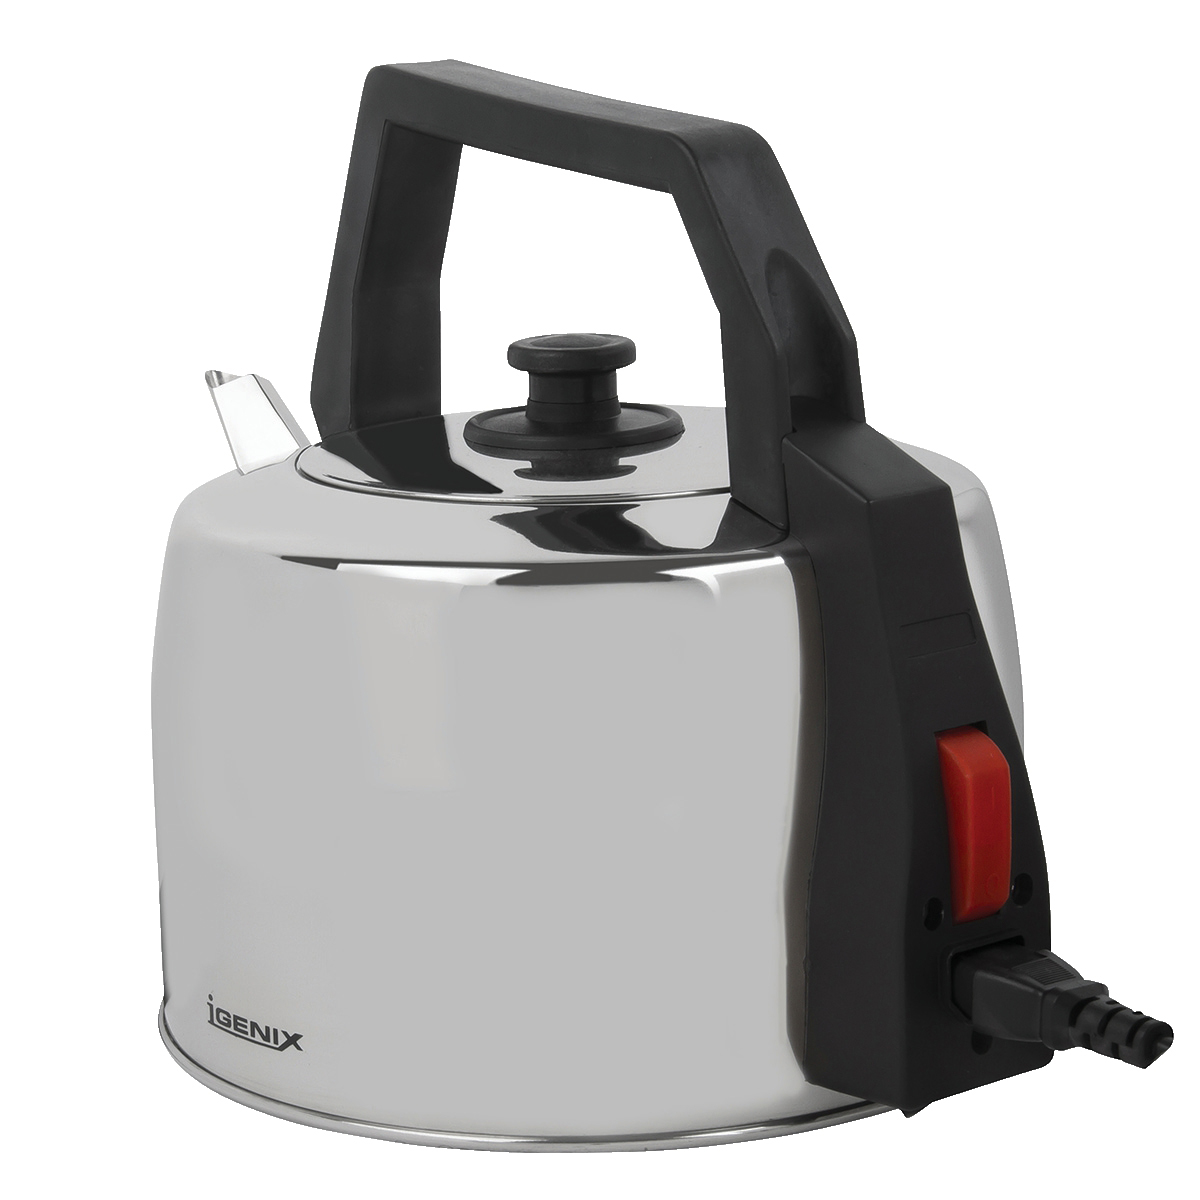 Kitchen Appliances Igenix Catering Kettle Corded 2200W 3.5 Litre Stainless Steel Ref IG4350